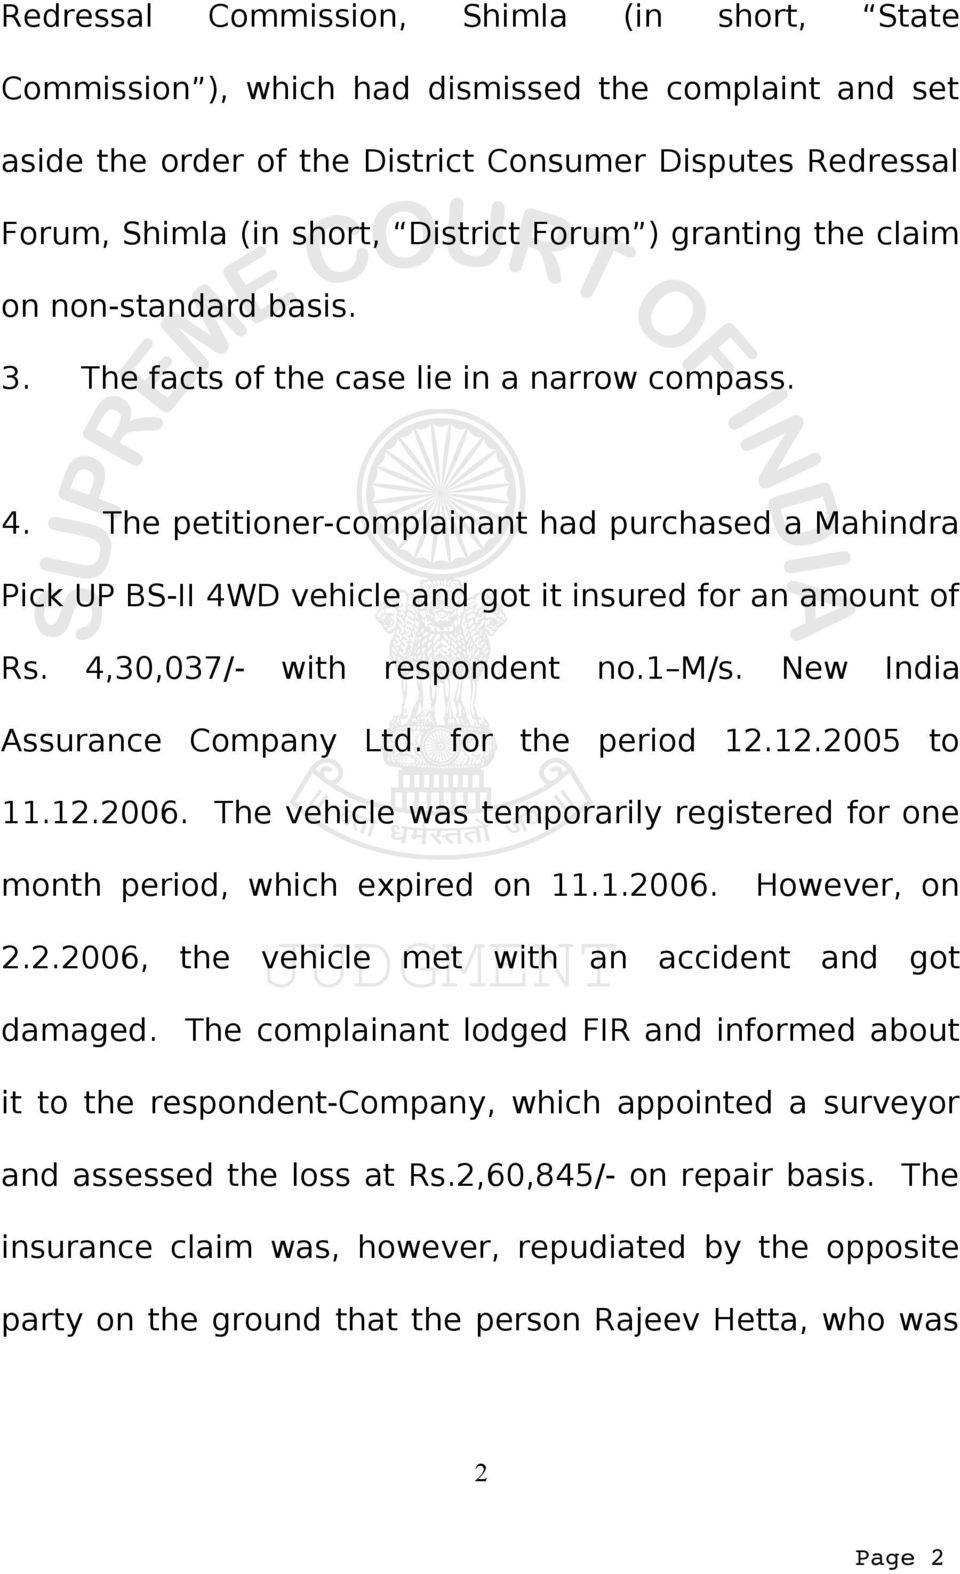 The petitioner-complainant had purchased a Mahindra Pick UP BS-II 4WD vehicle and got it insured for an amount of Rs. 4,30,037/- with respondent no.1 M/s. New India Assurance Company Ltd.